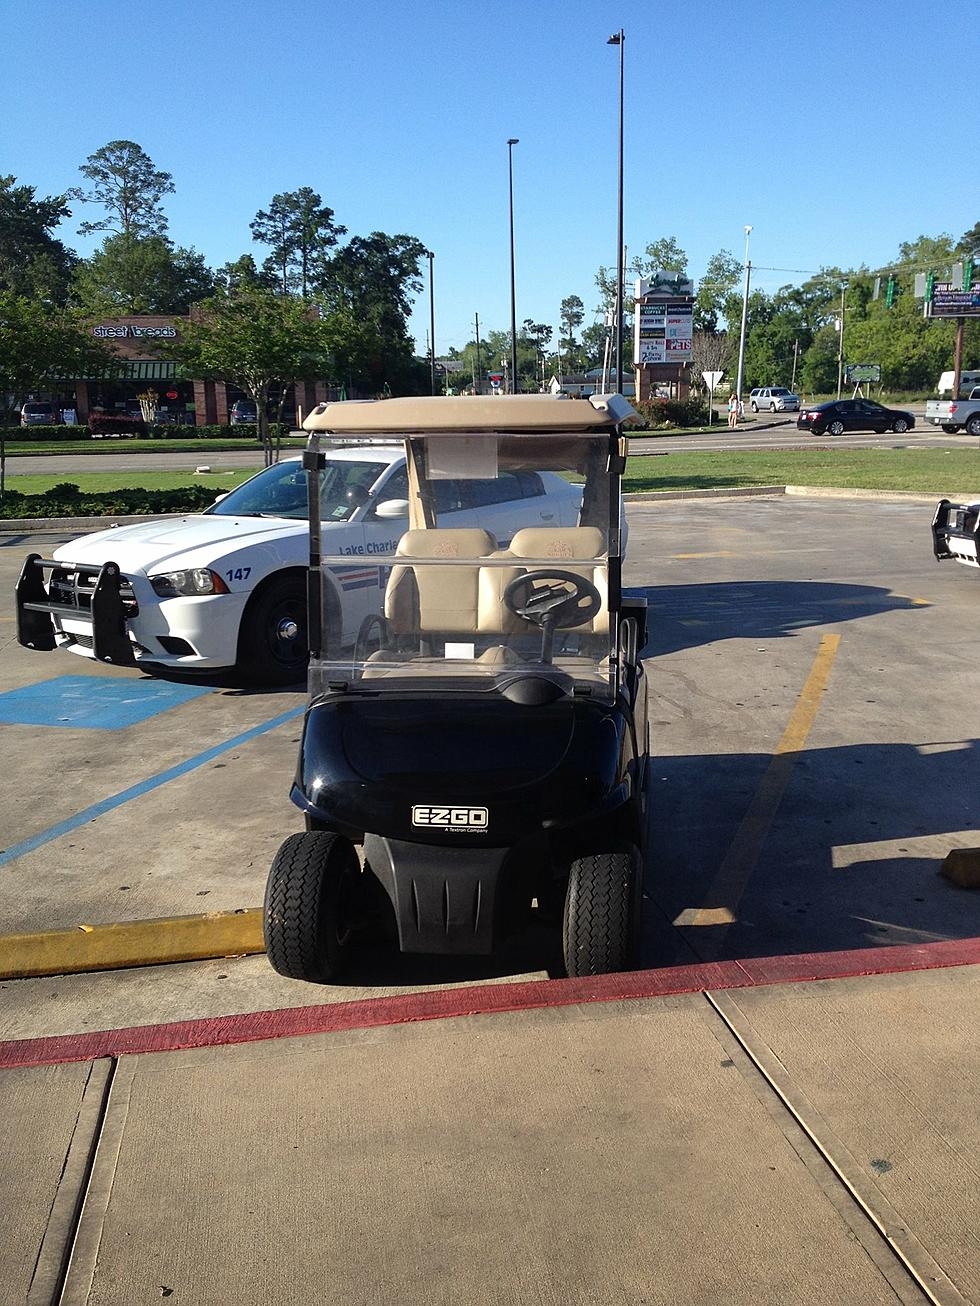 Guys Steal Golf Cart, Drives To Restaurant In Lake Charles on atv guys, shoes guys, florida the cart guys, parts guys,